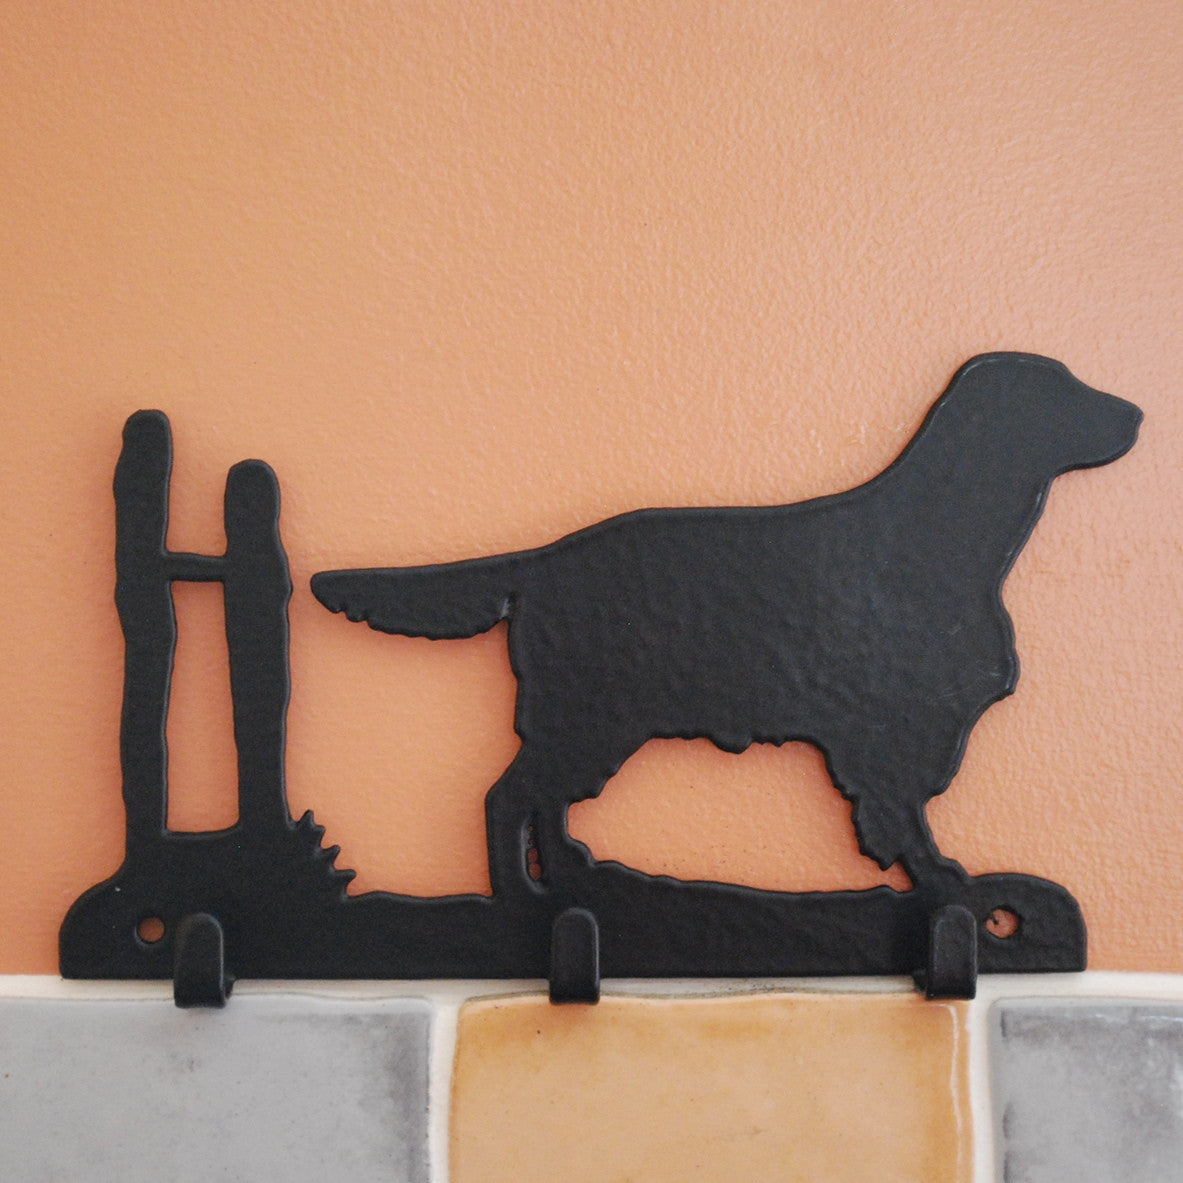 Yorkshire Terrier Dog Key Racks - 3 Hooks - Fernie's Choice Classic Country Wear for Dogs